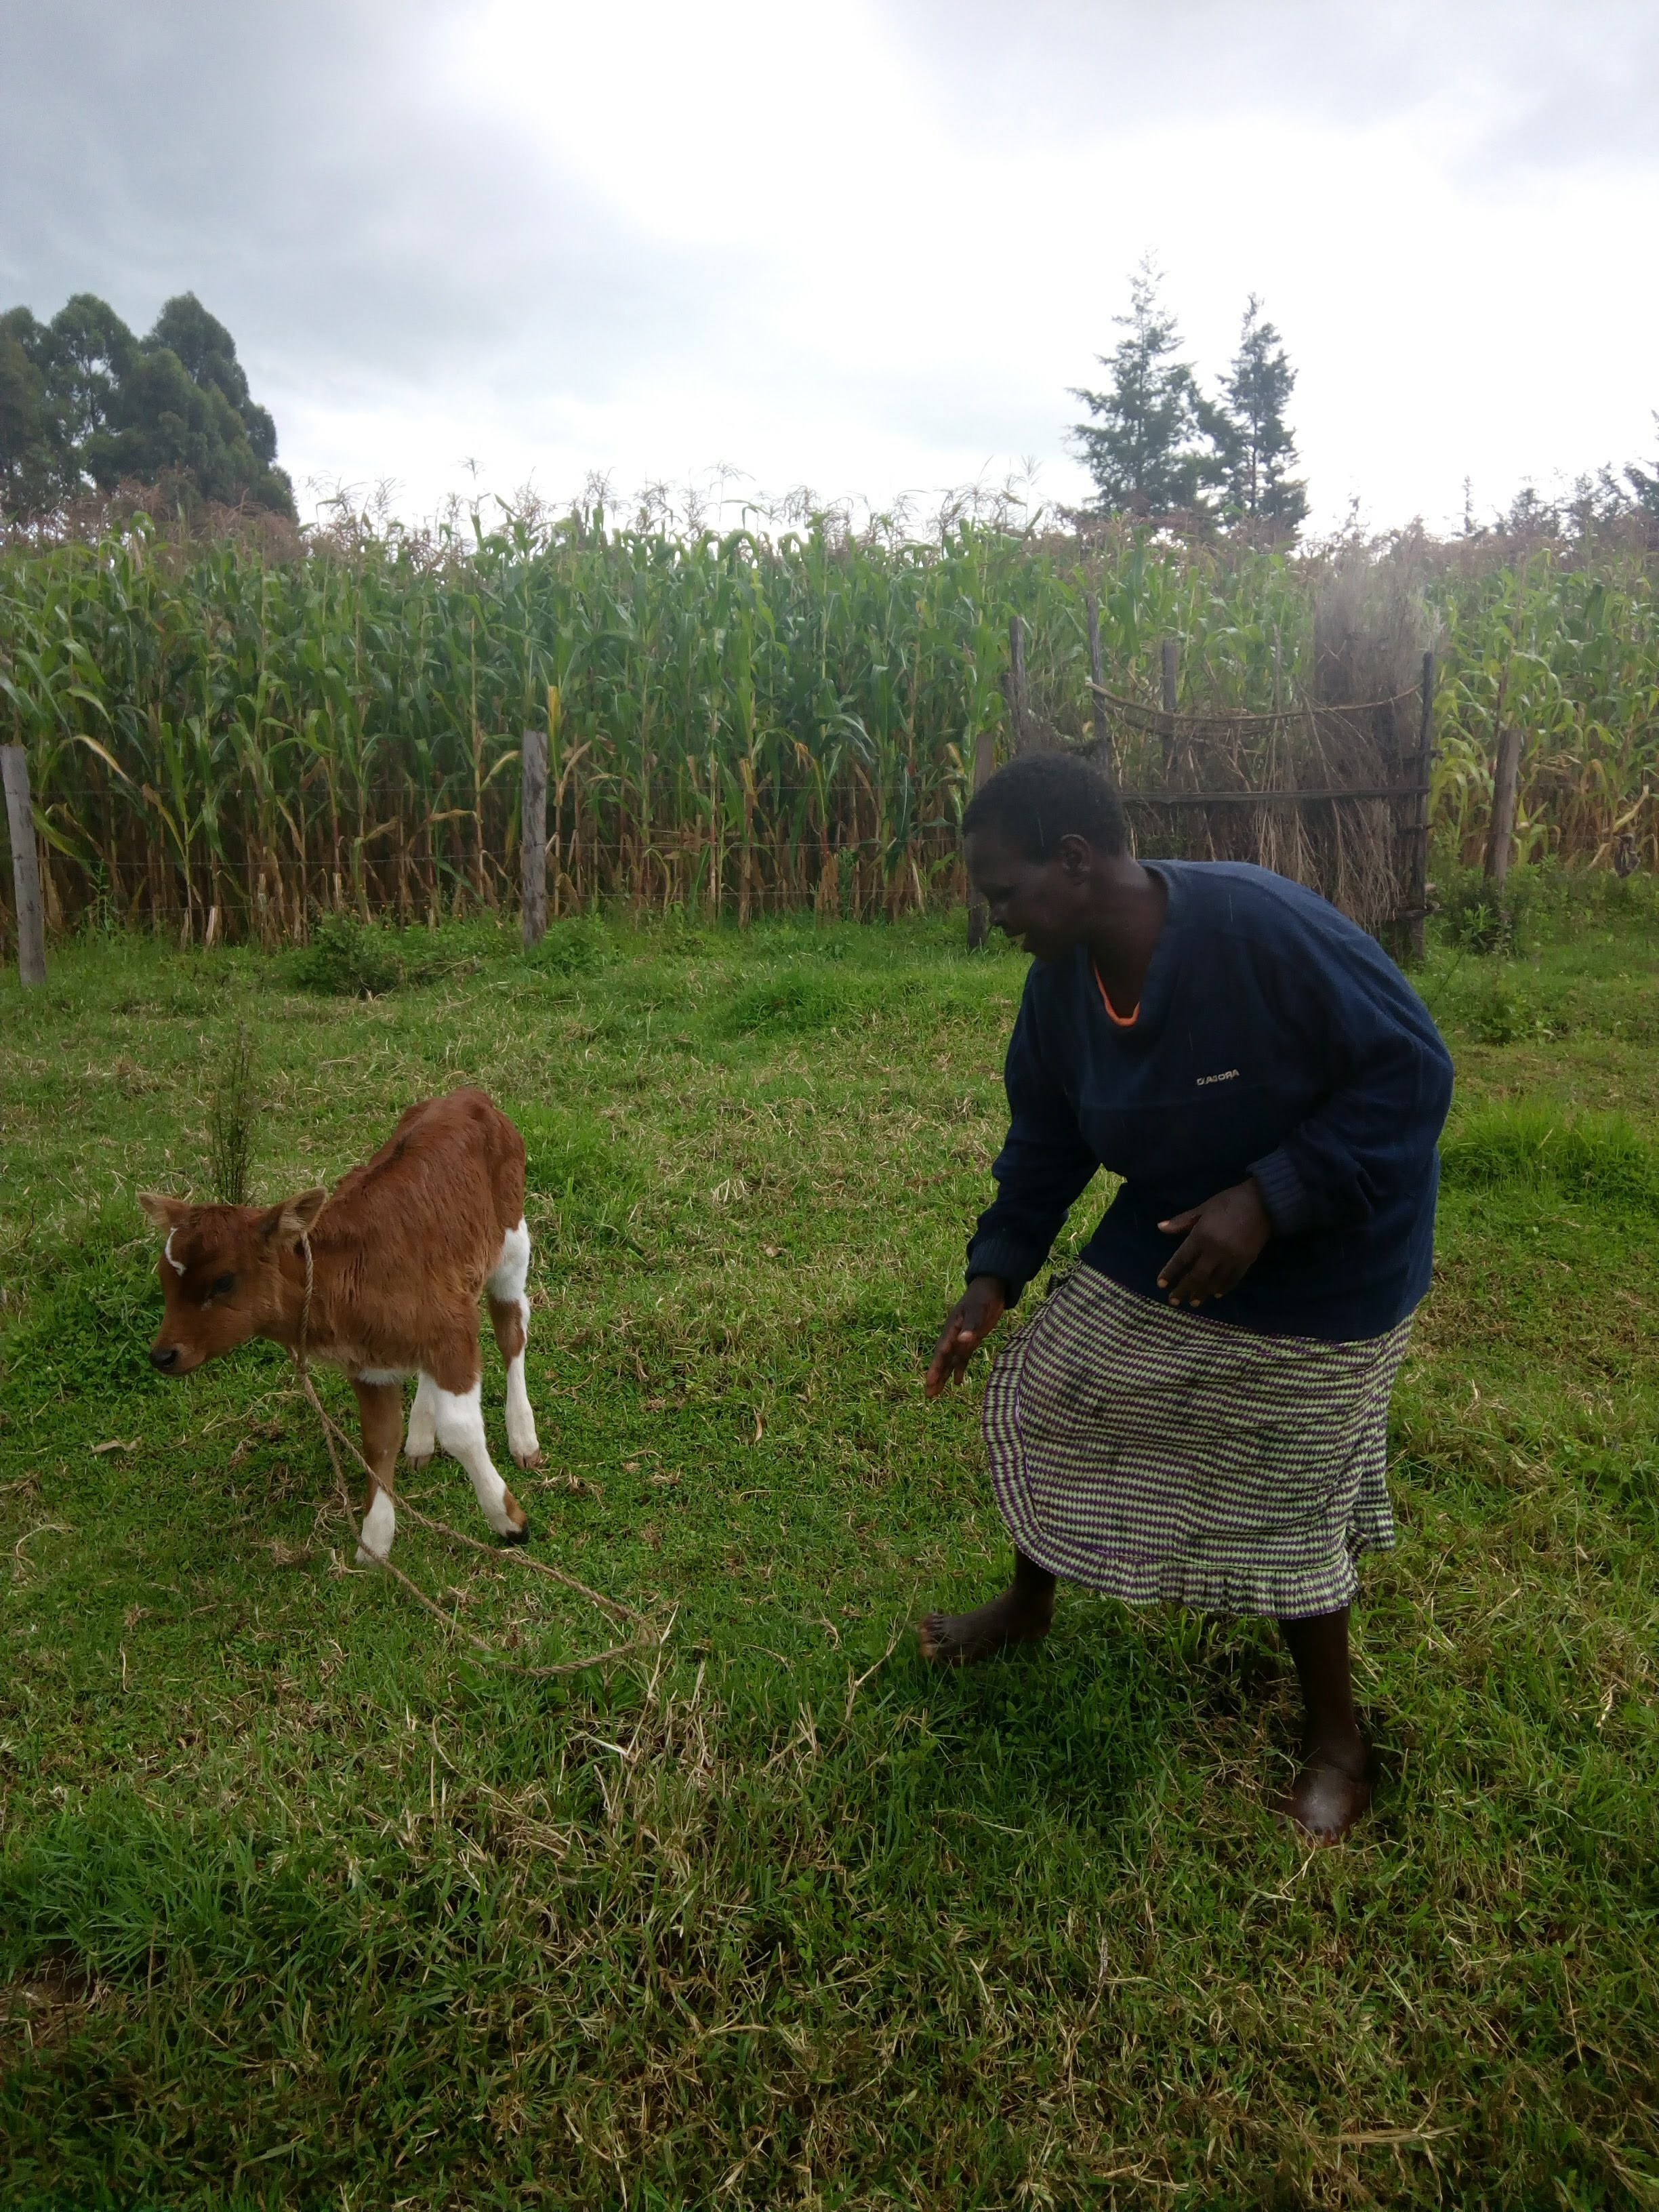 Susan with one her calves, donated through CWA's Cow Project Mission in 2013